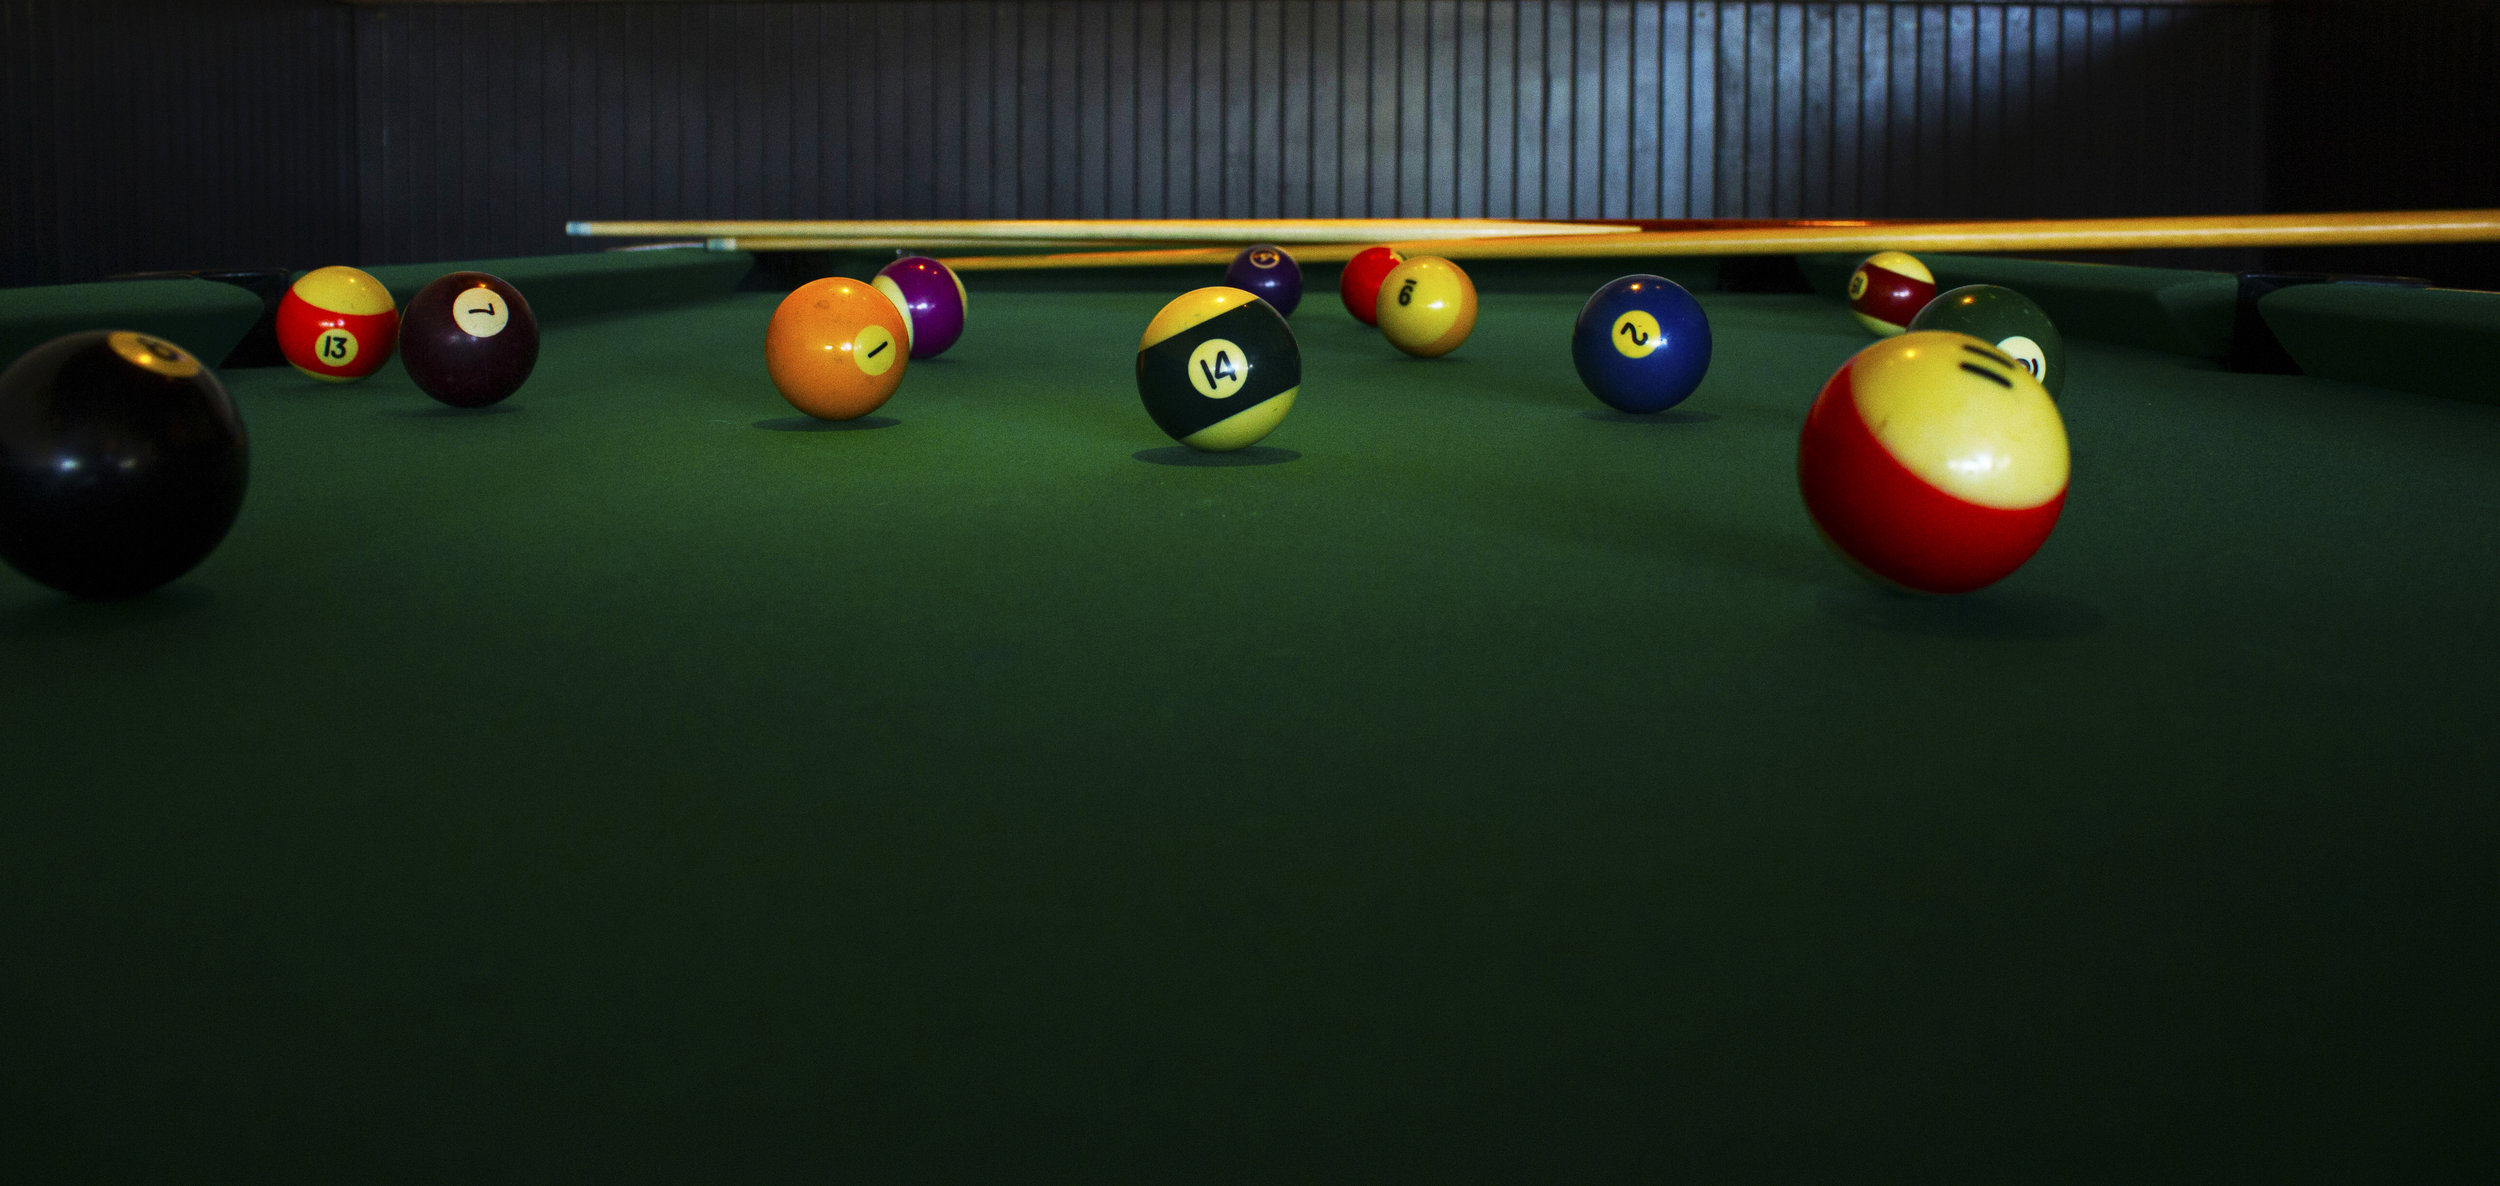 Pool Table 2.jpg